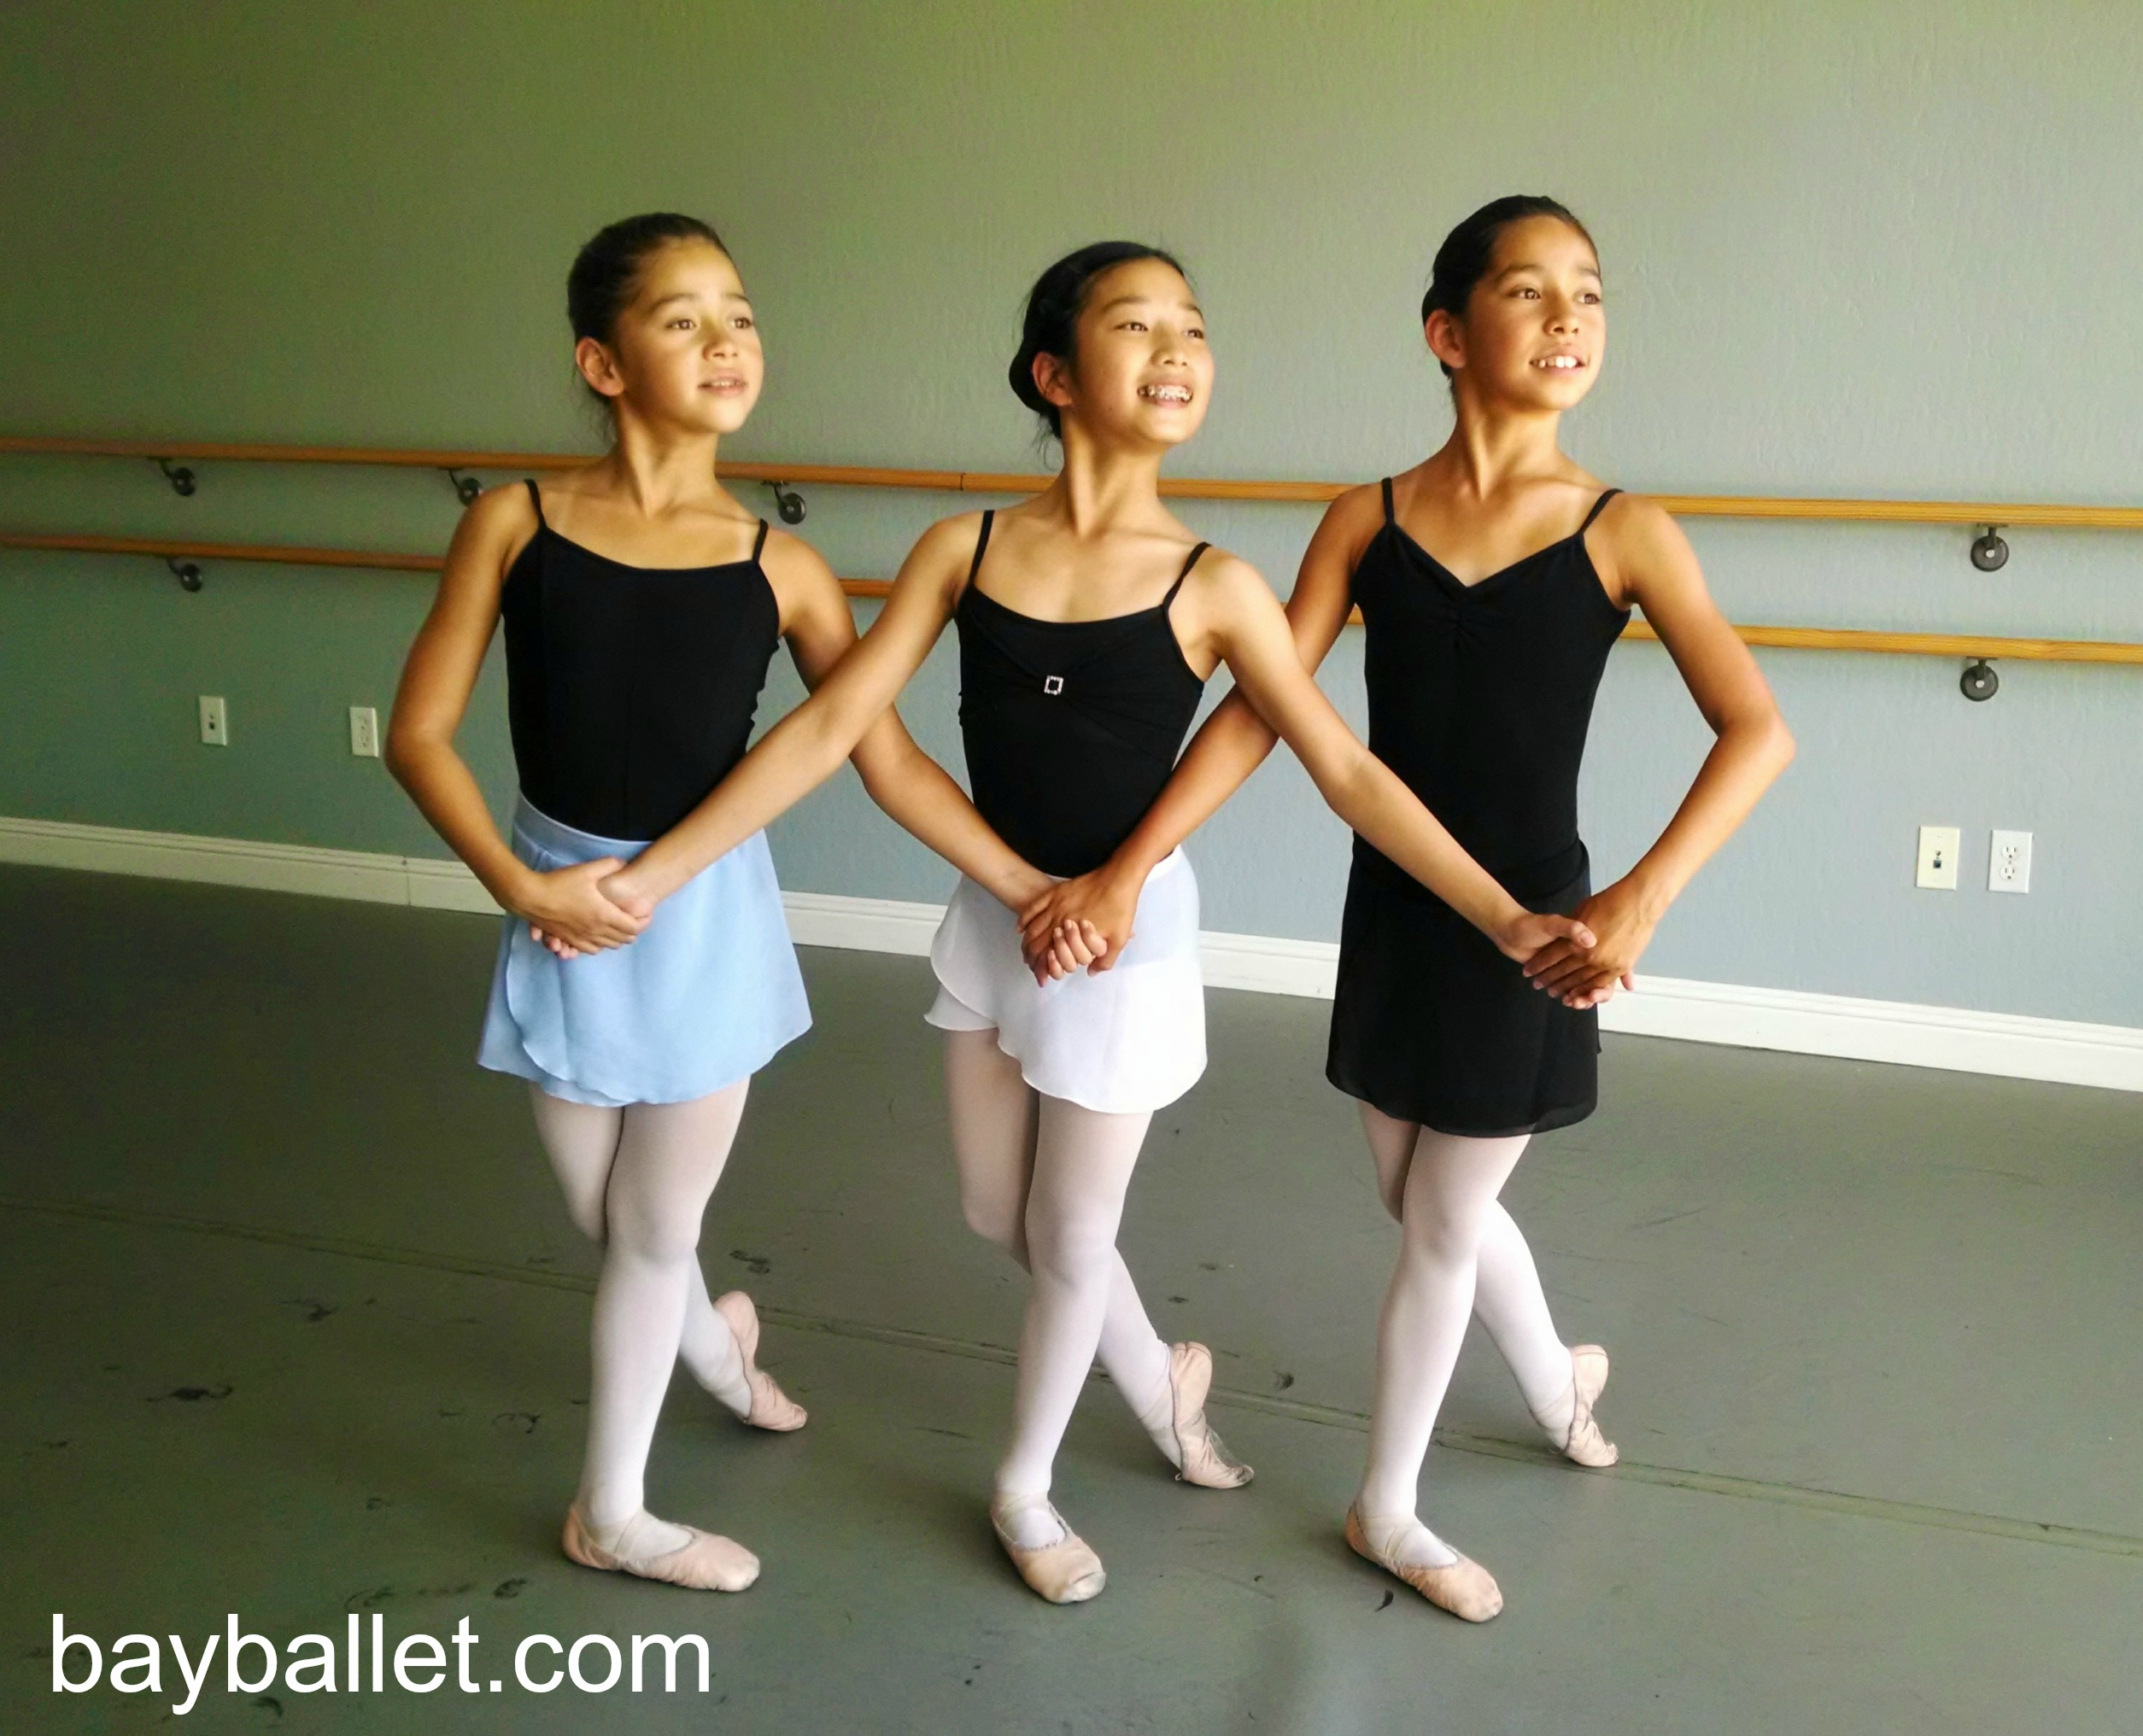 Bay_Ballet_Academy_San_Jose_Willow_Glen_Maximo_Califano_Dance_Classes_Jazz_Lyrical_Hip_Hop_Modern_Neoclassical_Class_11